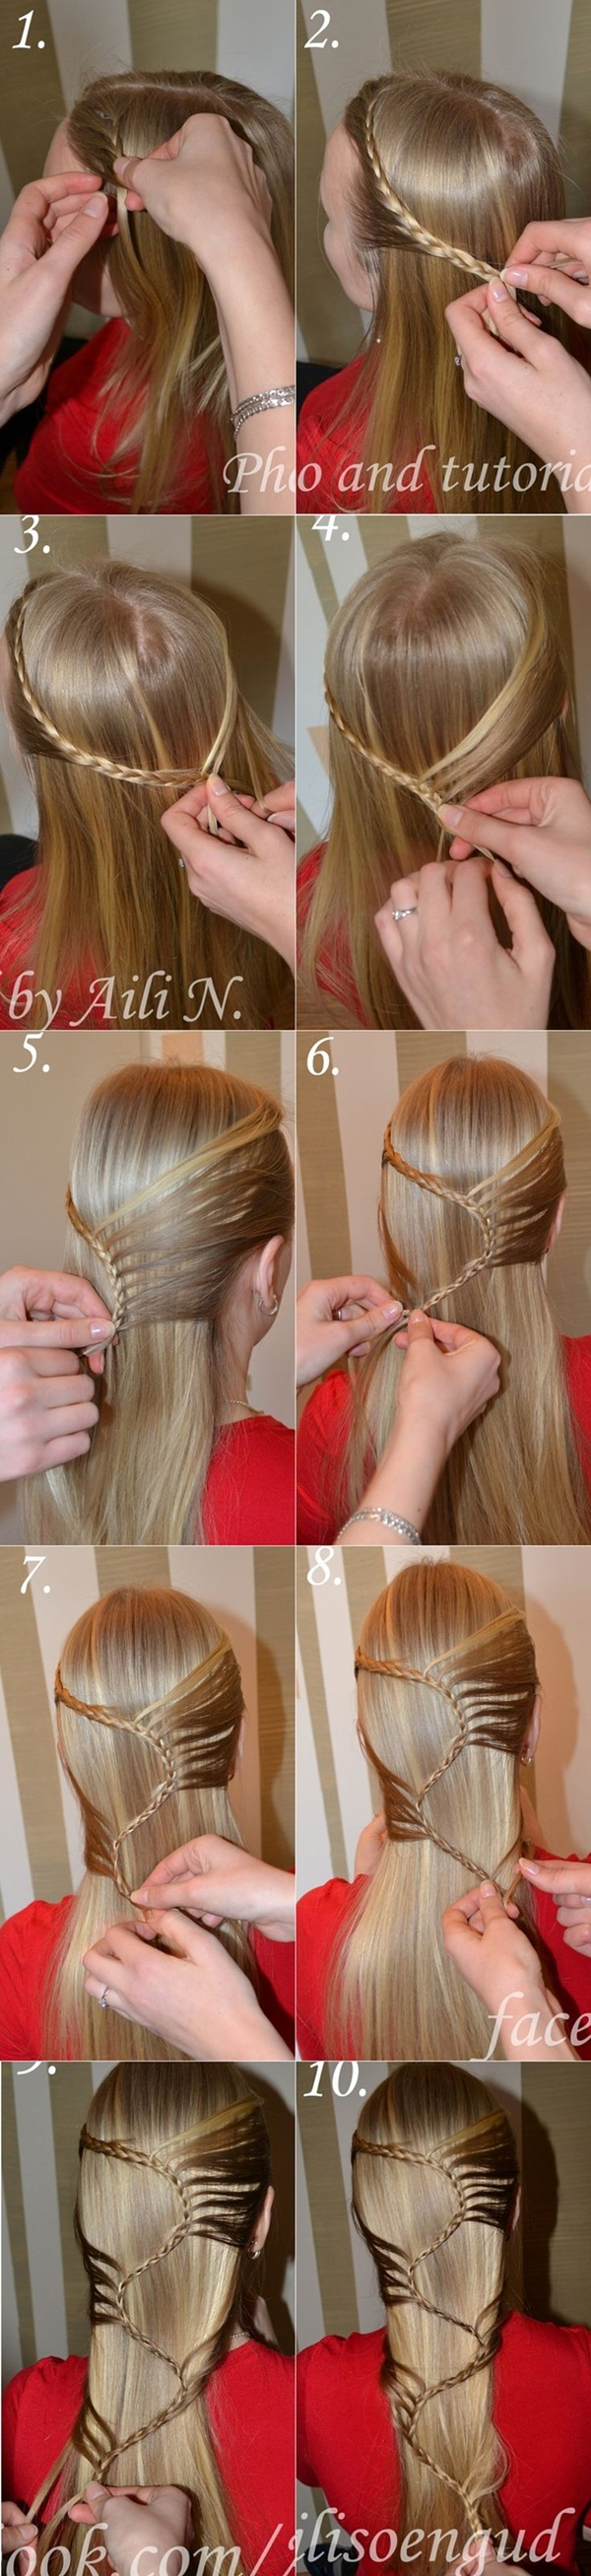 Simple Five Minute Hairstyles (23)